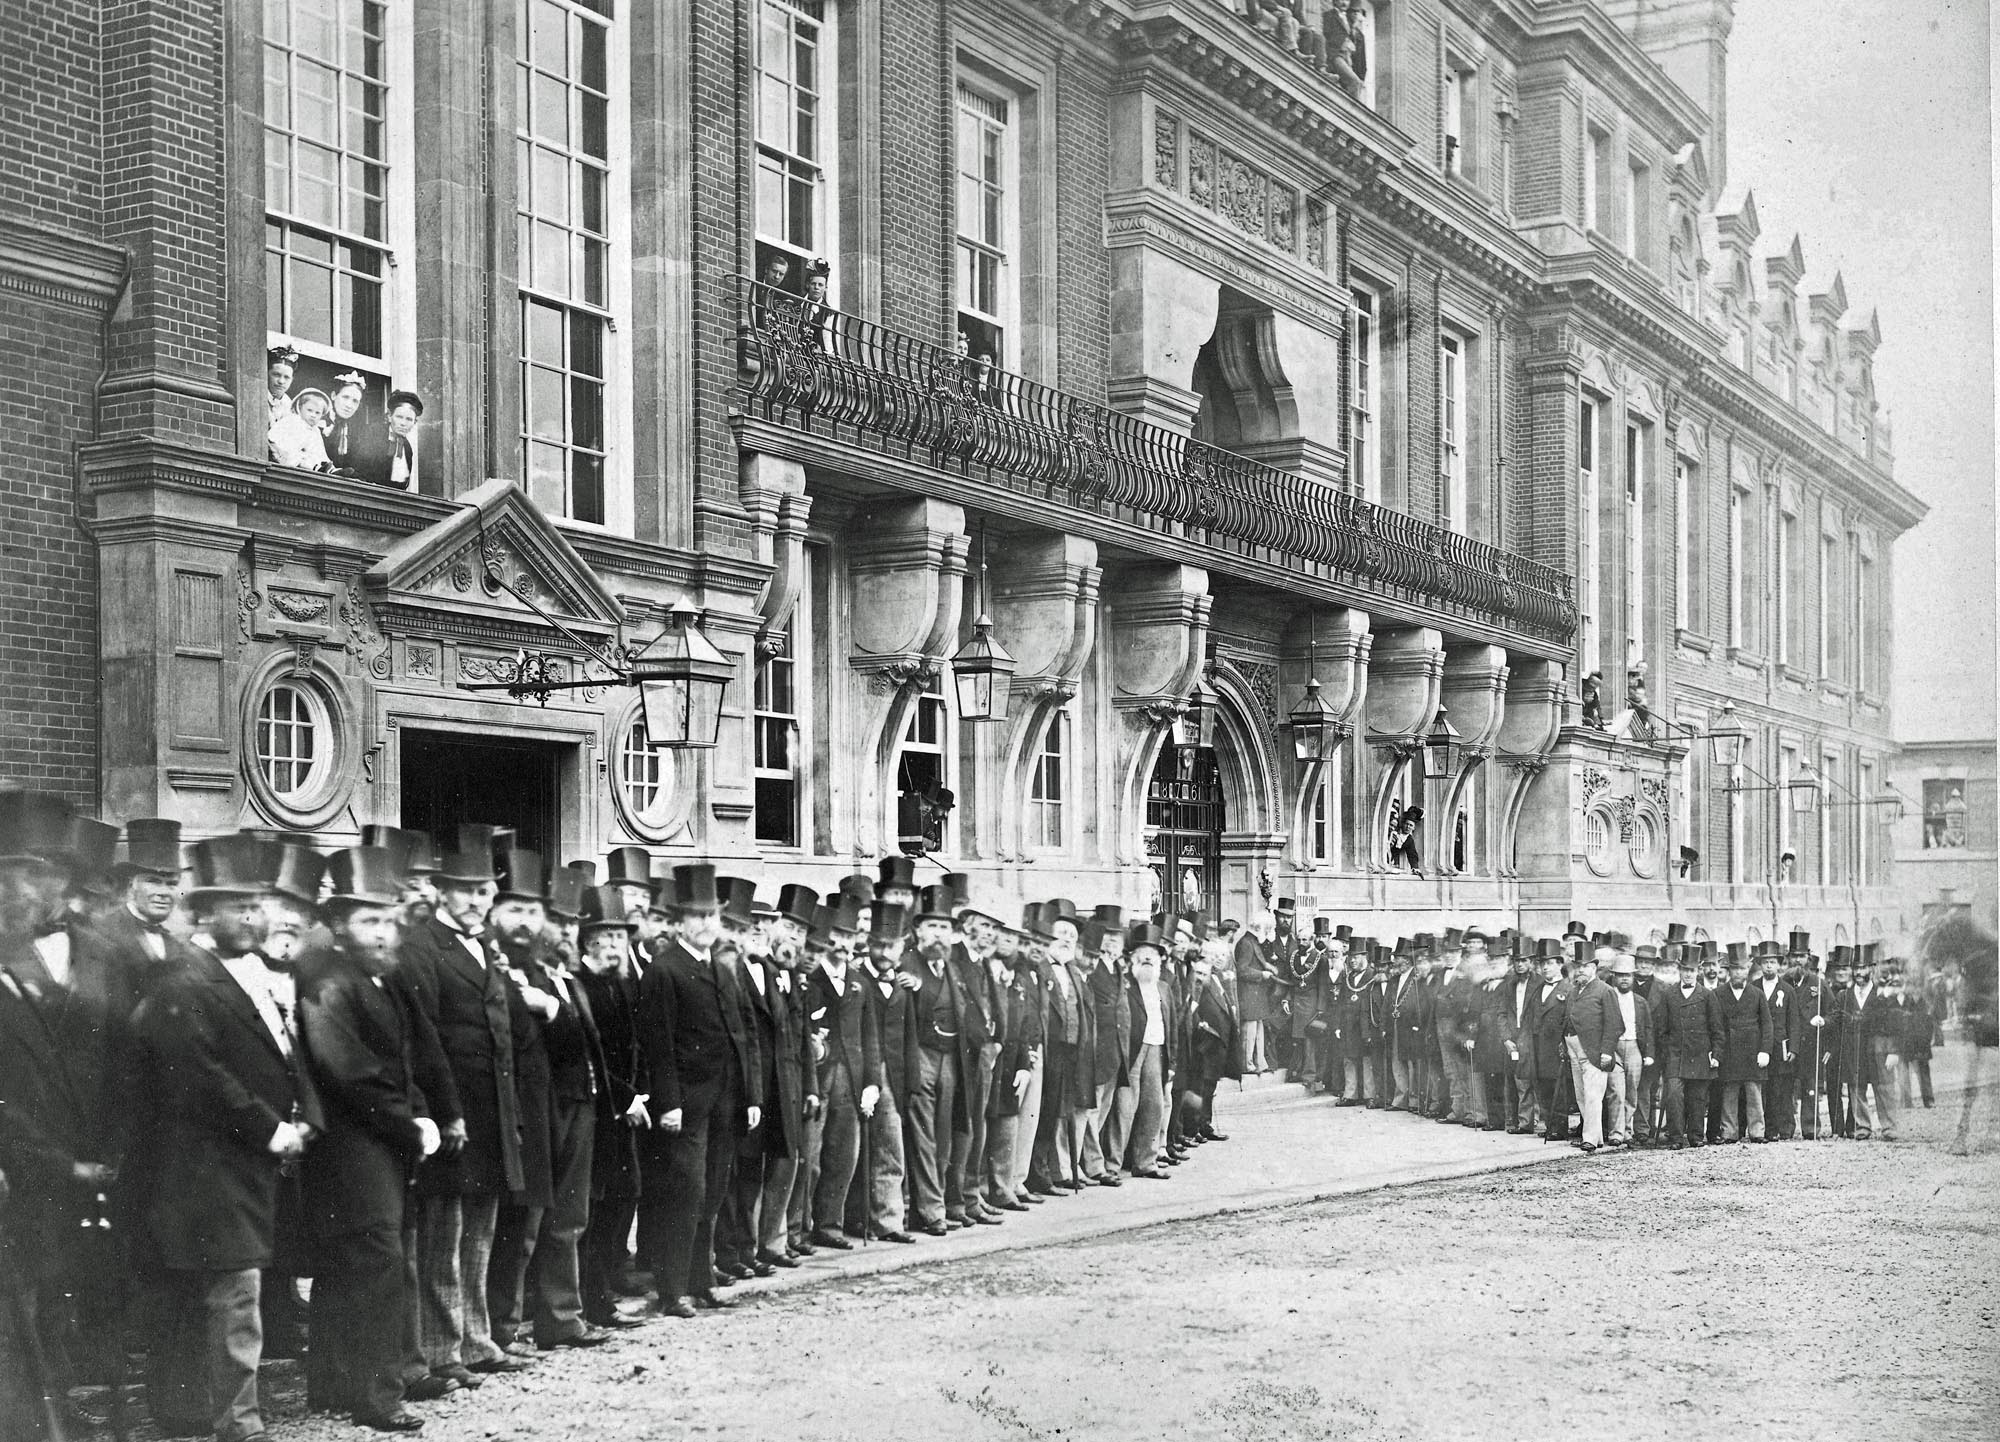 The opening ceremony of the Town Hall, August 7th 1876 -